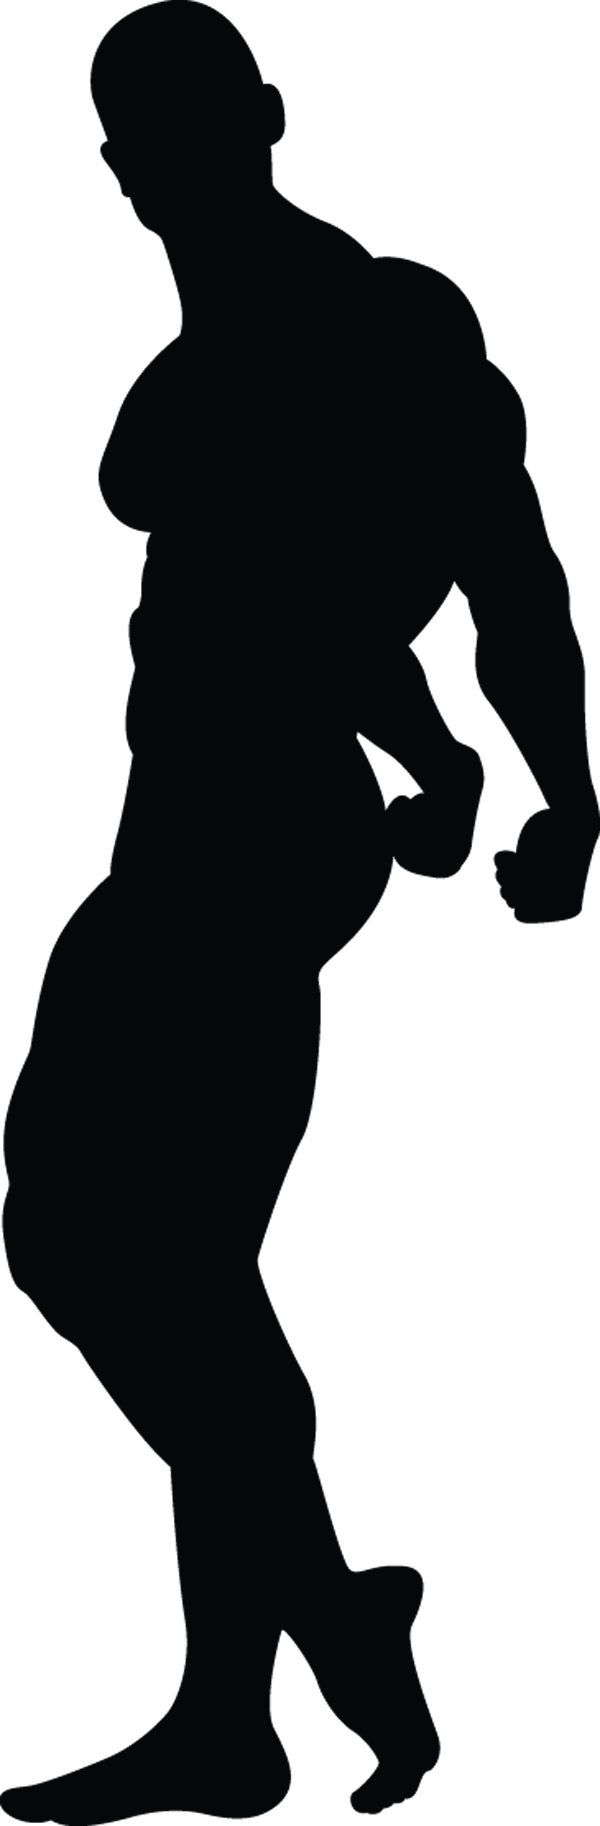 Man Muscle Pose Hands Behind Back Silhouette